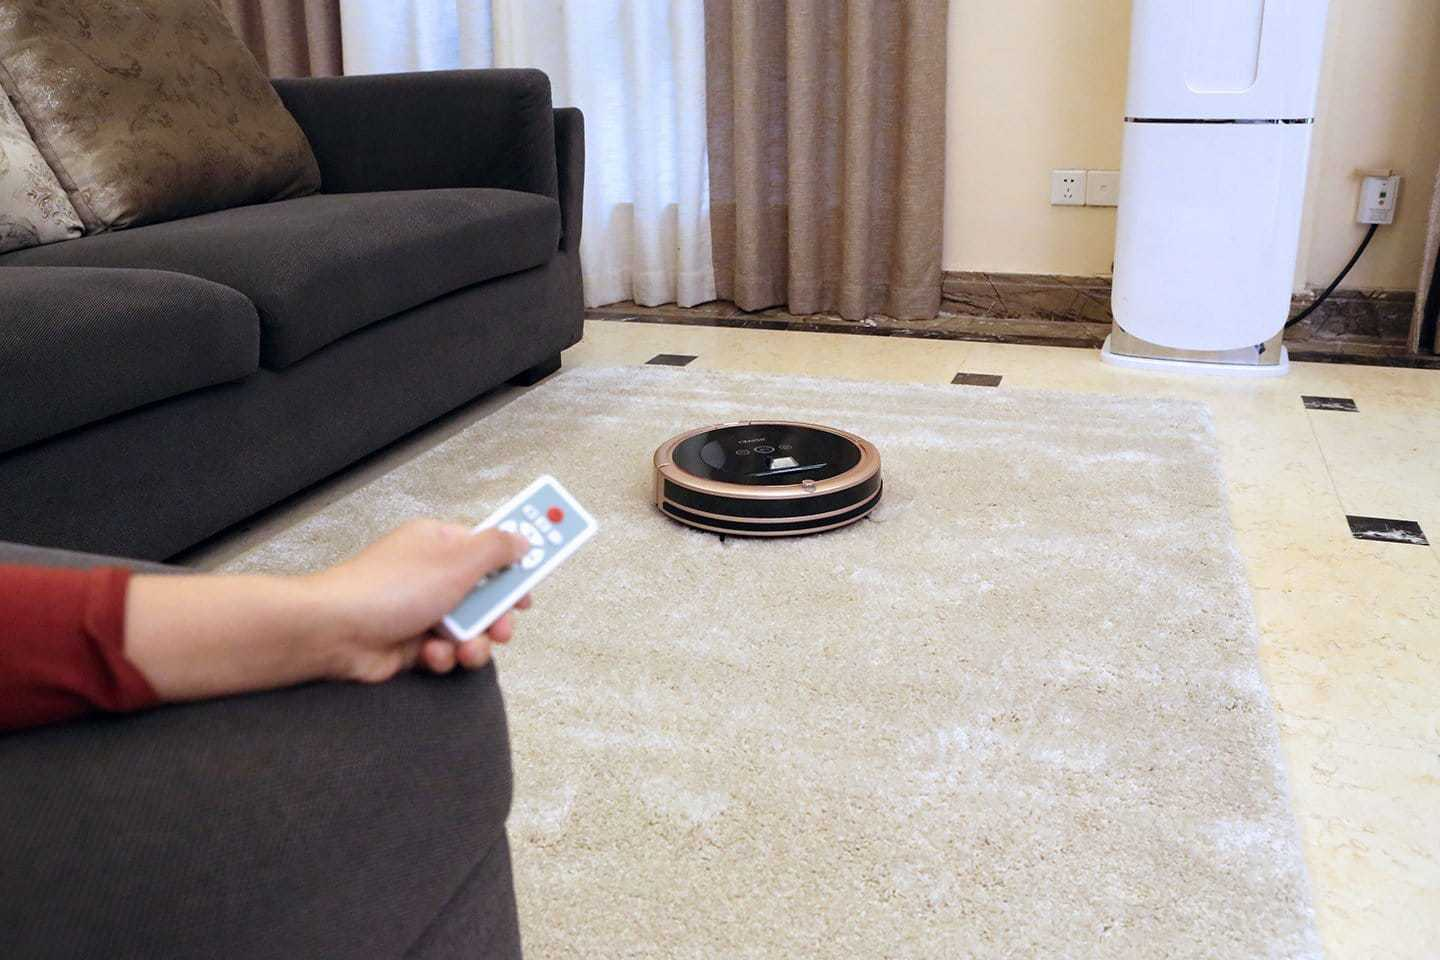 Introducing The Next Generation i5 Robot Vacuum Cleaner Expected To Hit IndieGoGo Soon - 2